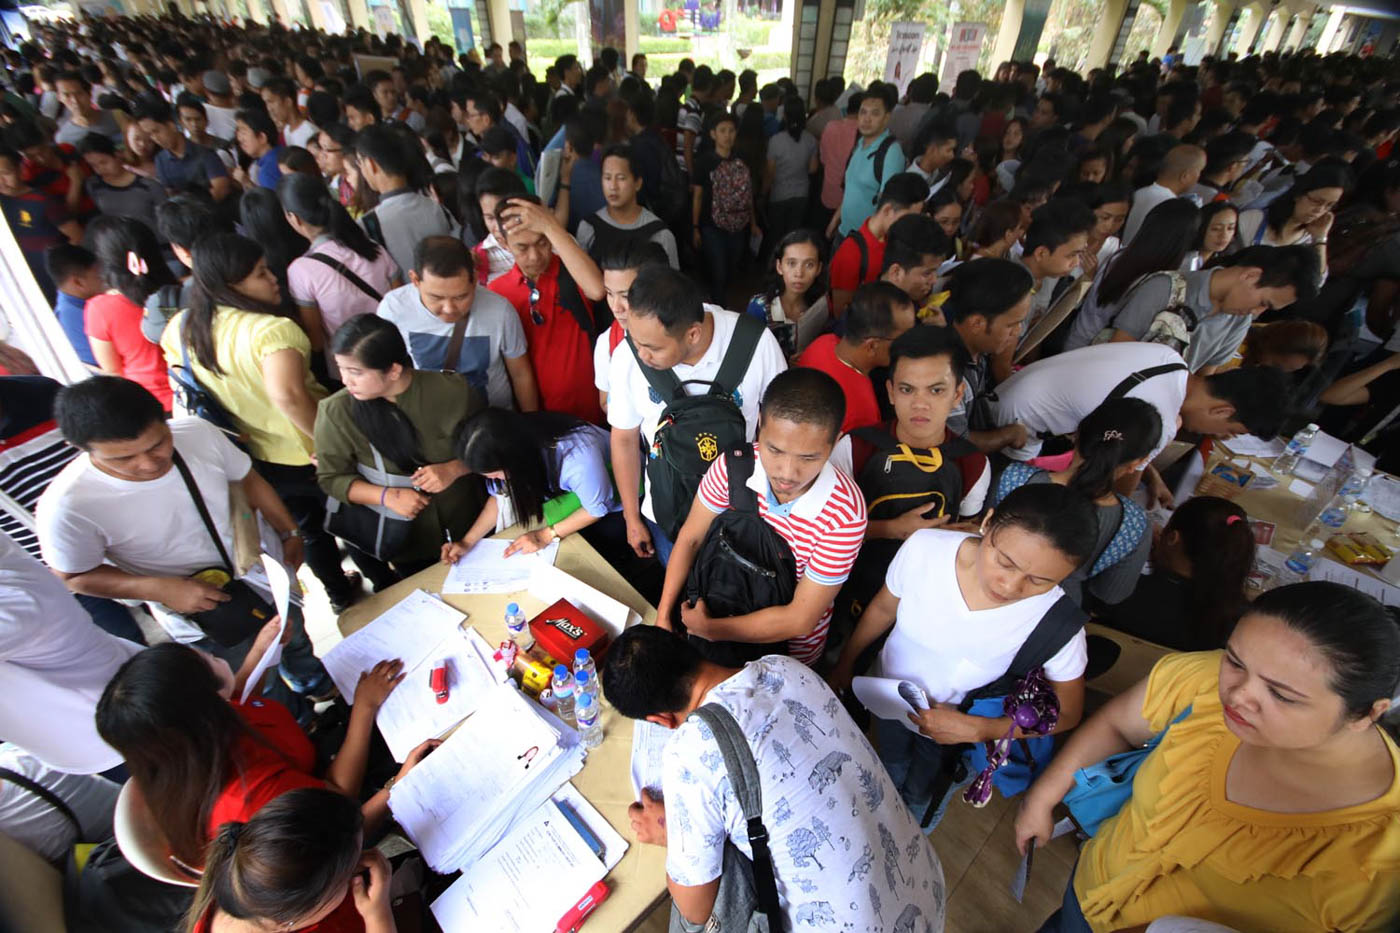 A total of 34,359 applicants registered in 2018 DOLE Job Fair at Quezon City Hall. Photo by Darren langit/Rappler